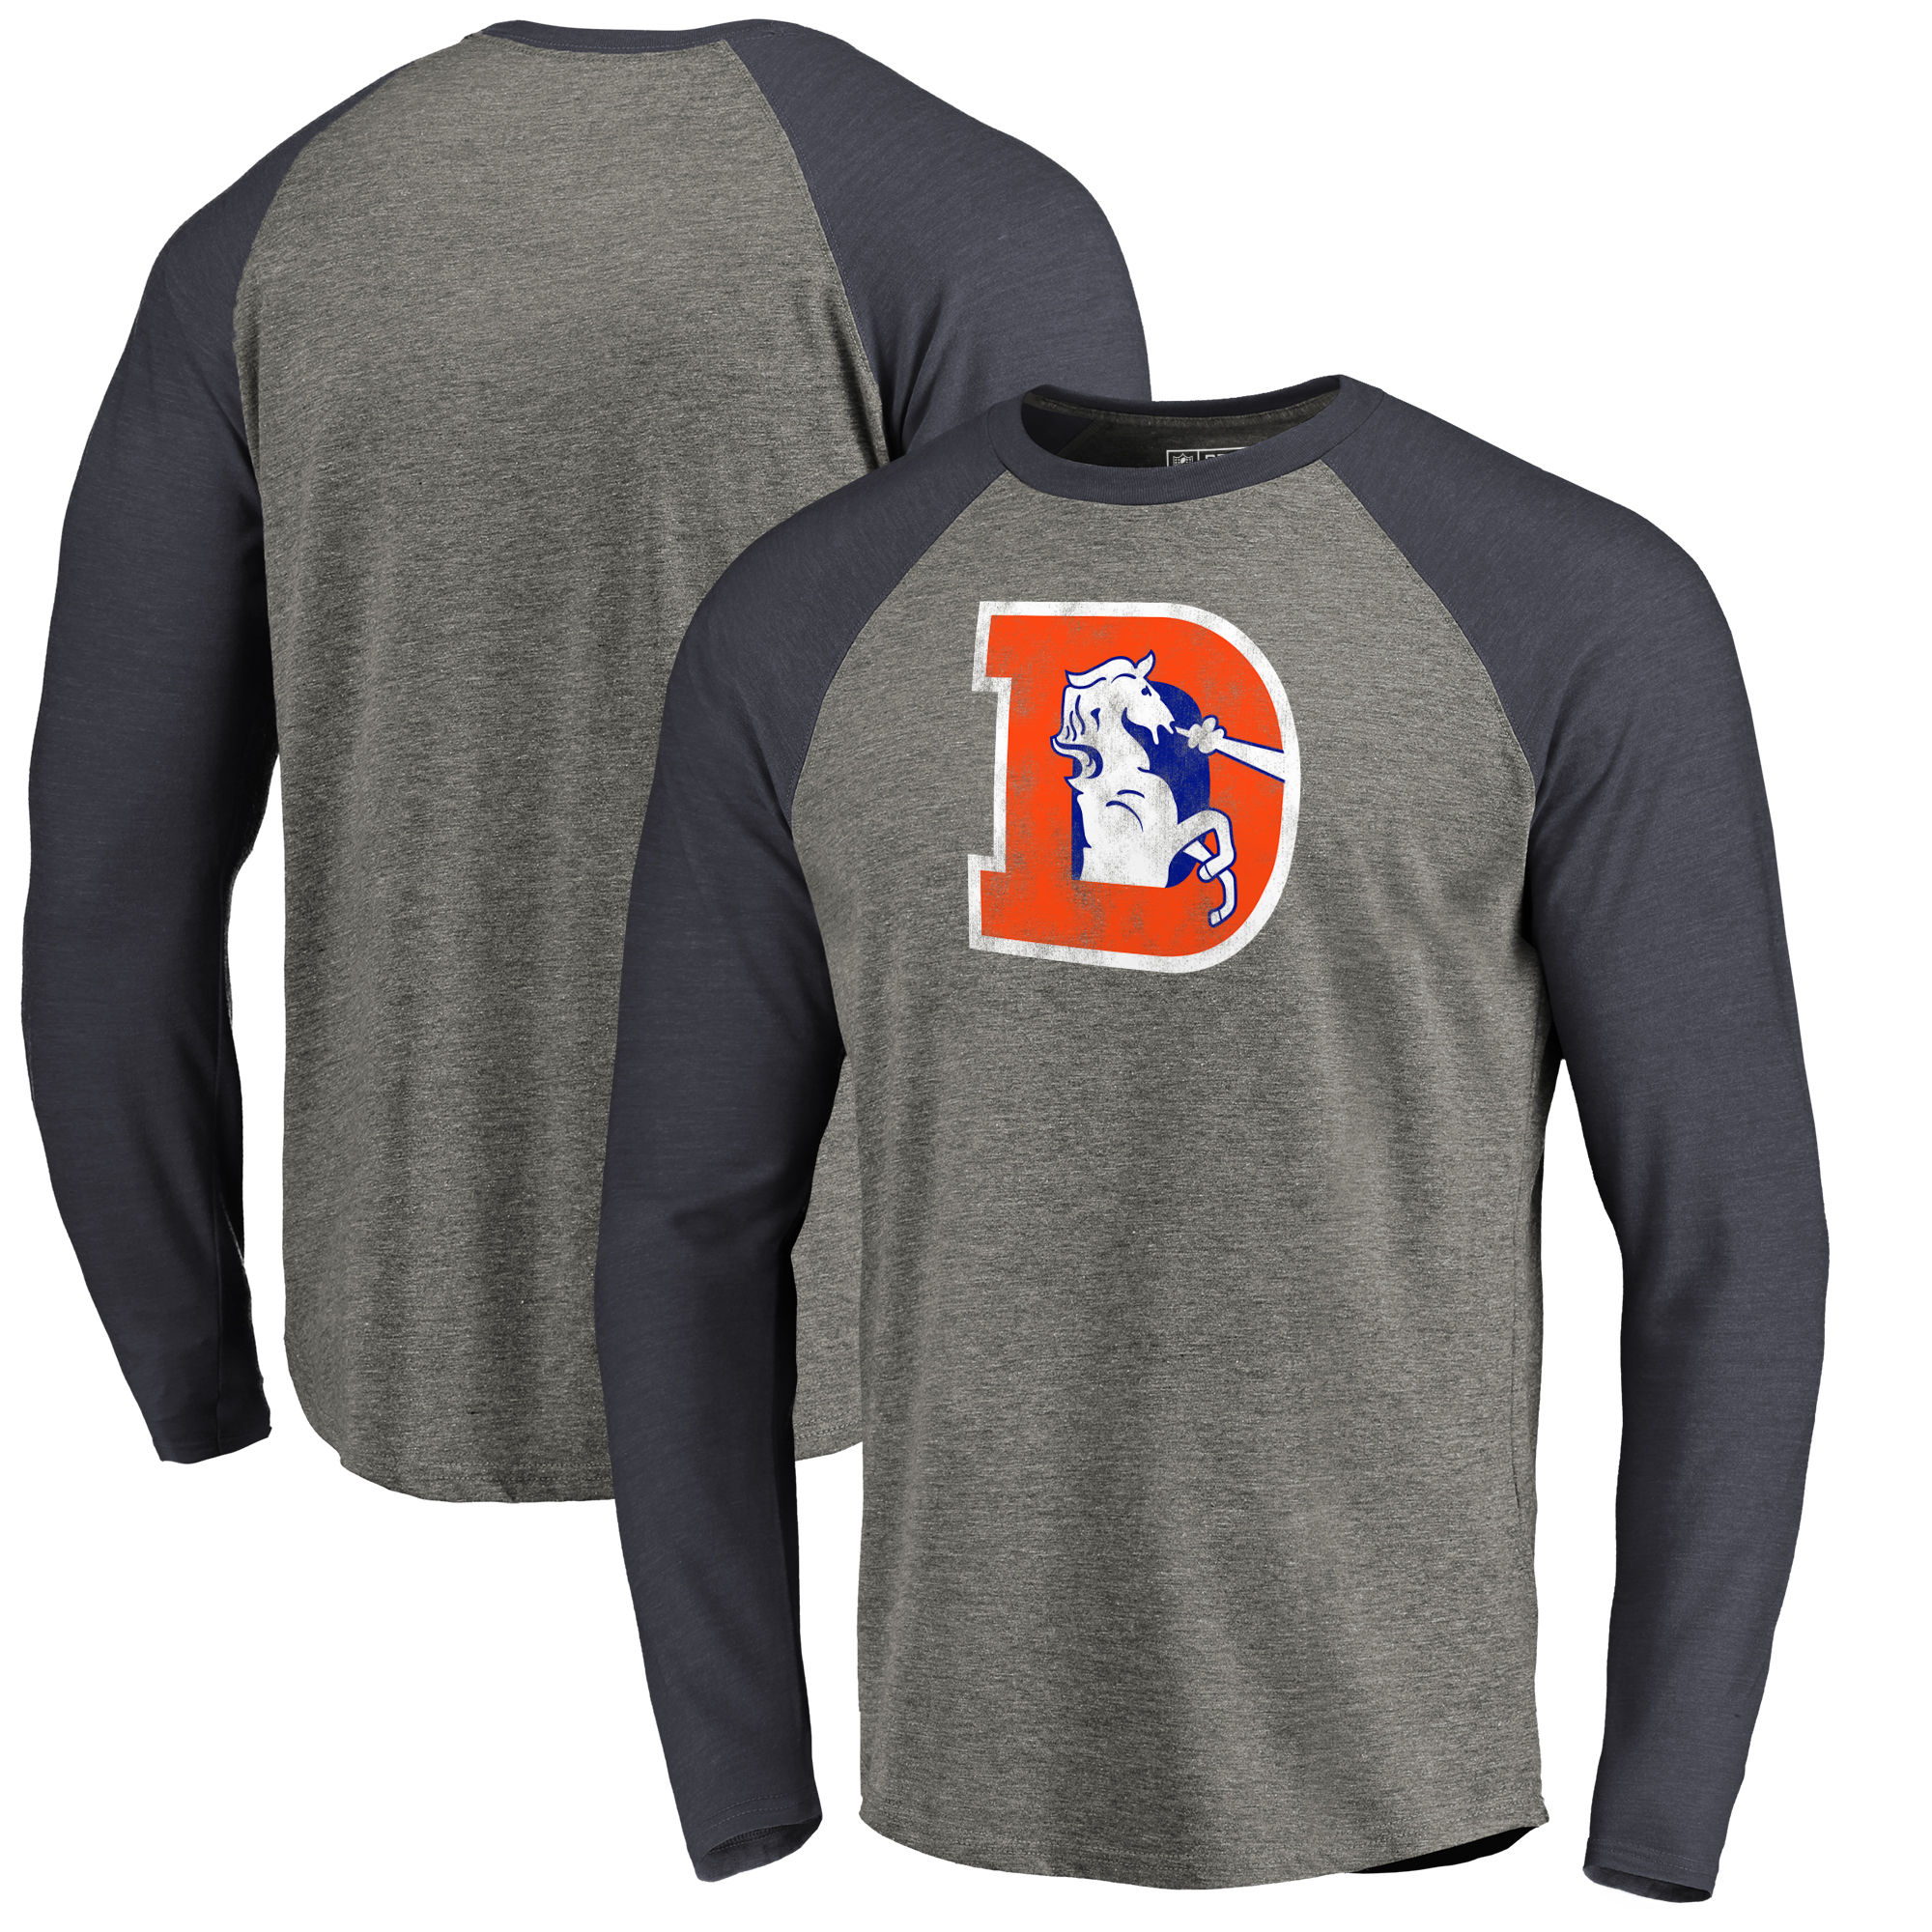 sale retailer 29122 9cdb1 Denver Broncos NFL Pro Line by Fanatics Branded Throwback Logo Big & Tall  Long Sleeve Tri-Blend Raglan T-Shirt - Gray/Navy